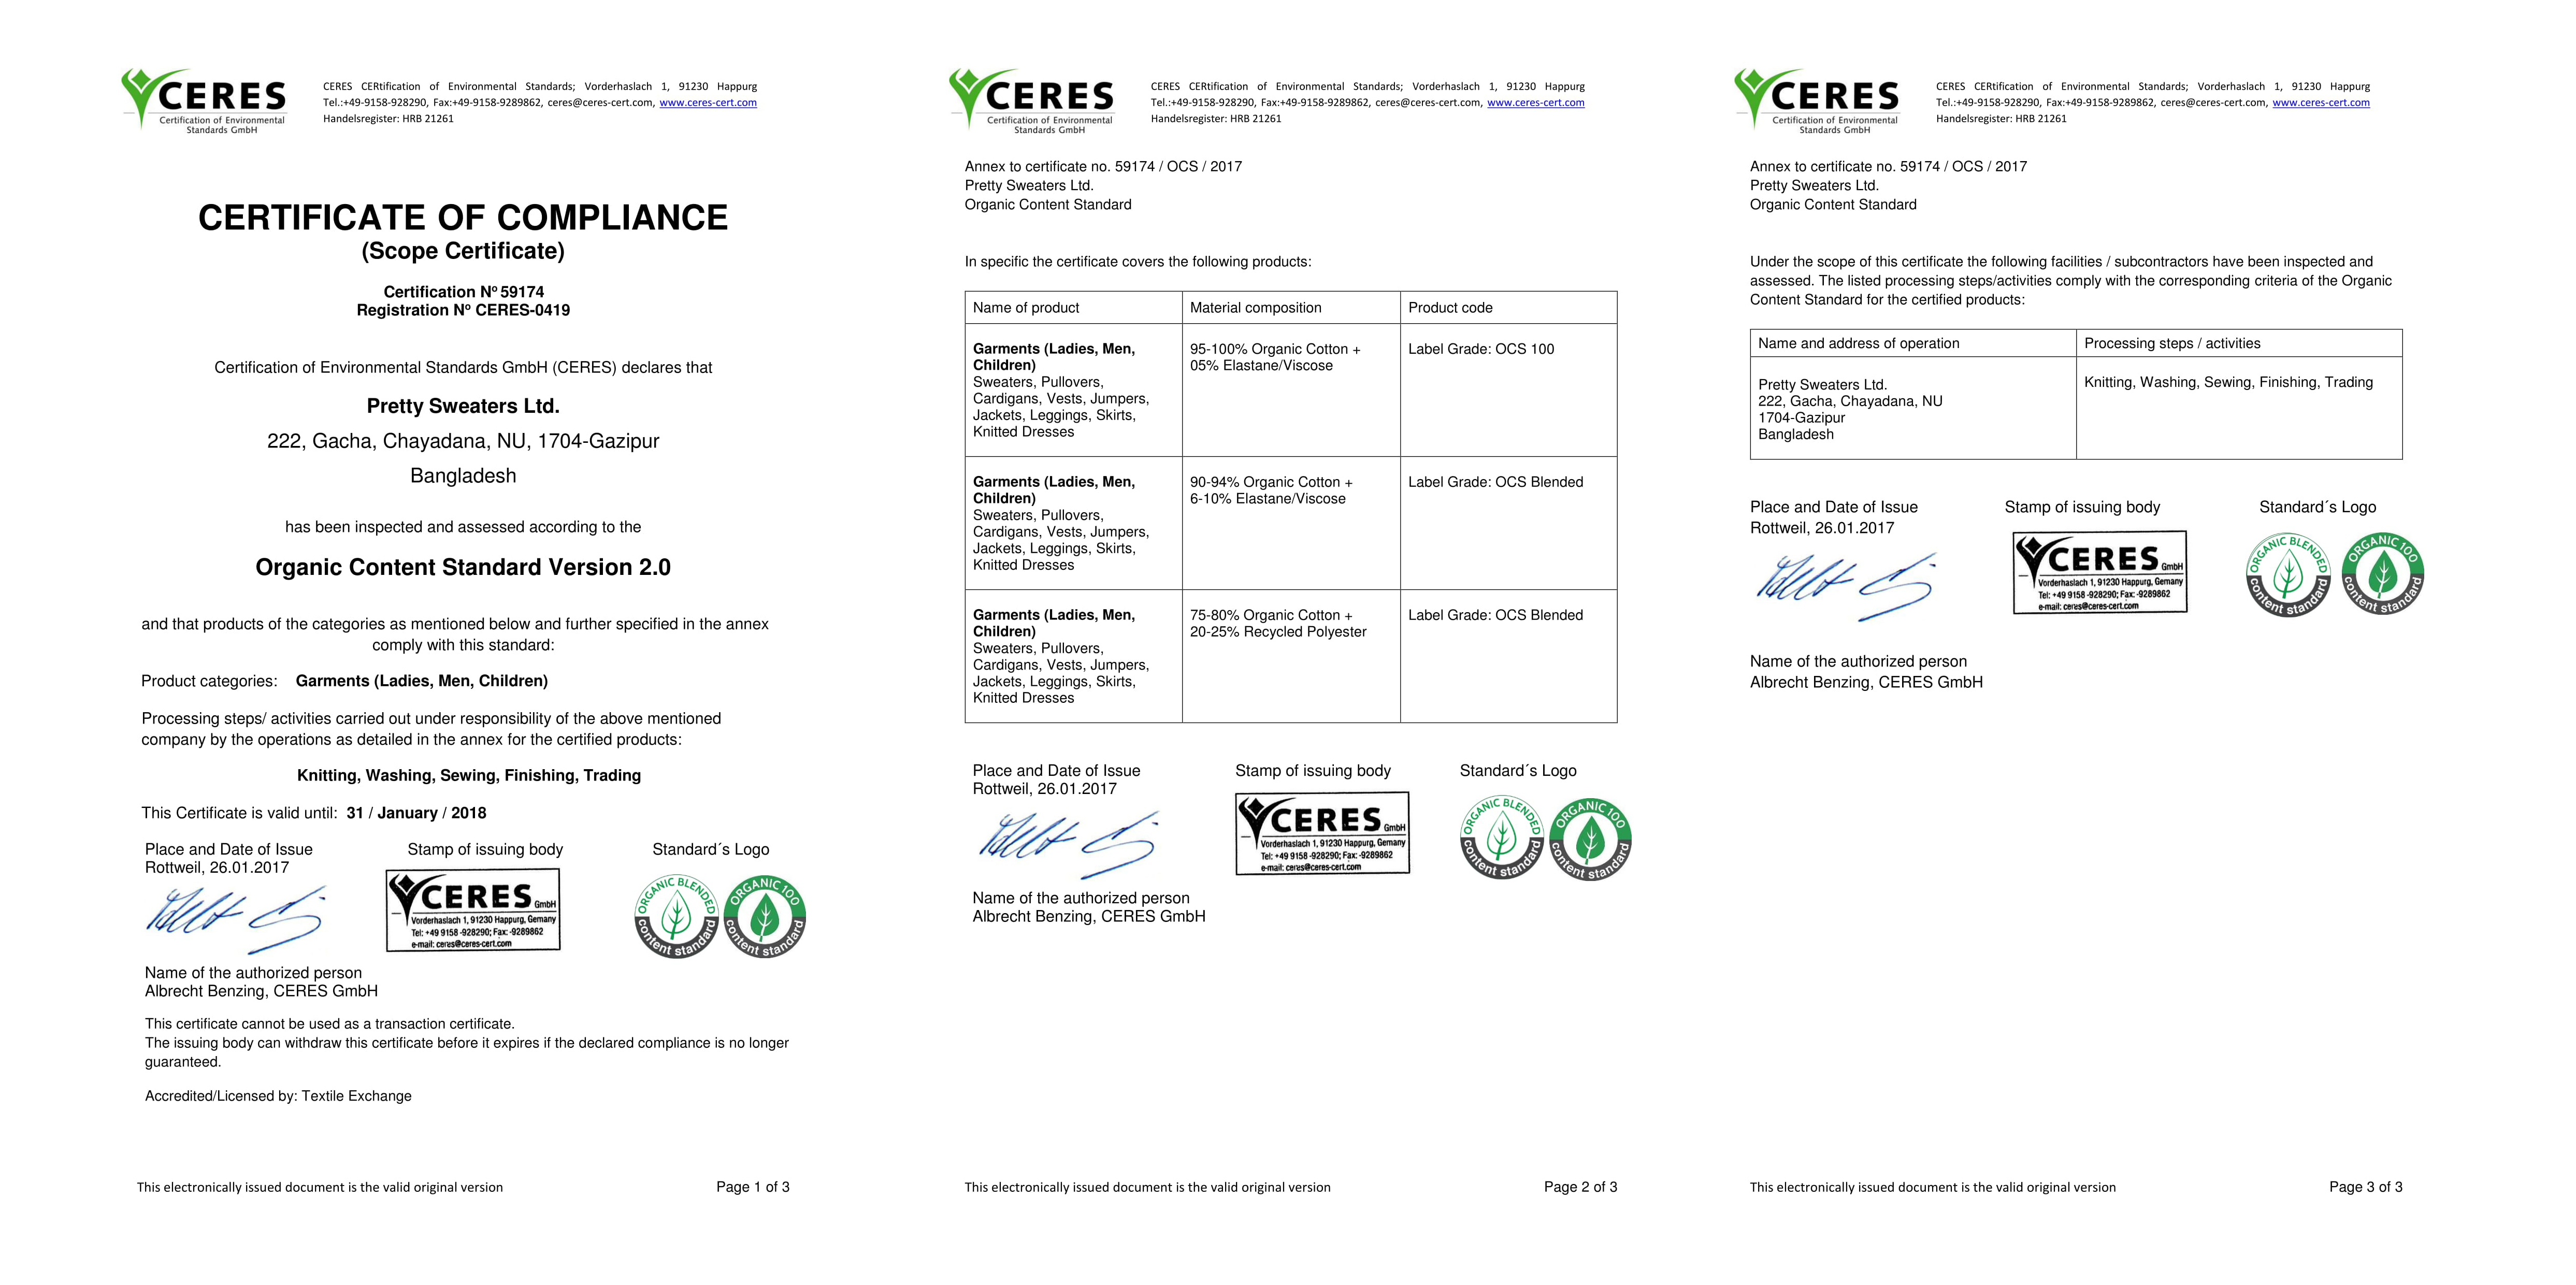 Certificate achievements the pretty group journey dates back last not the least our aim is to go green all the way including quality and on time delivery first is the corner stone of our success xflitez Images